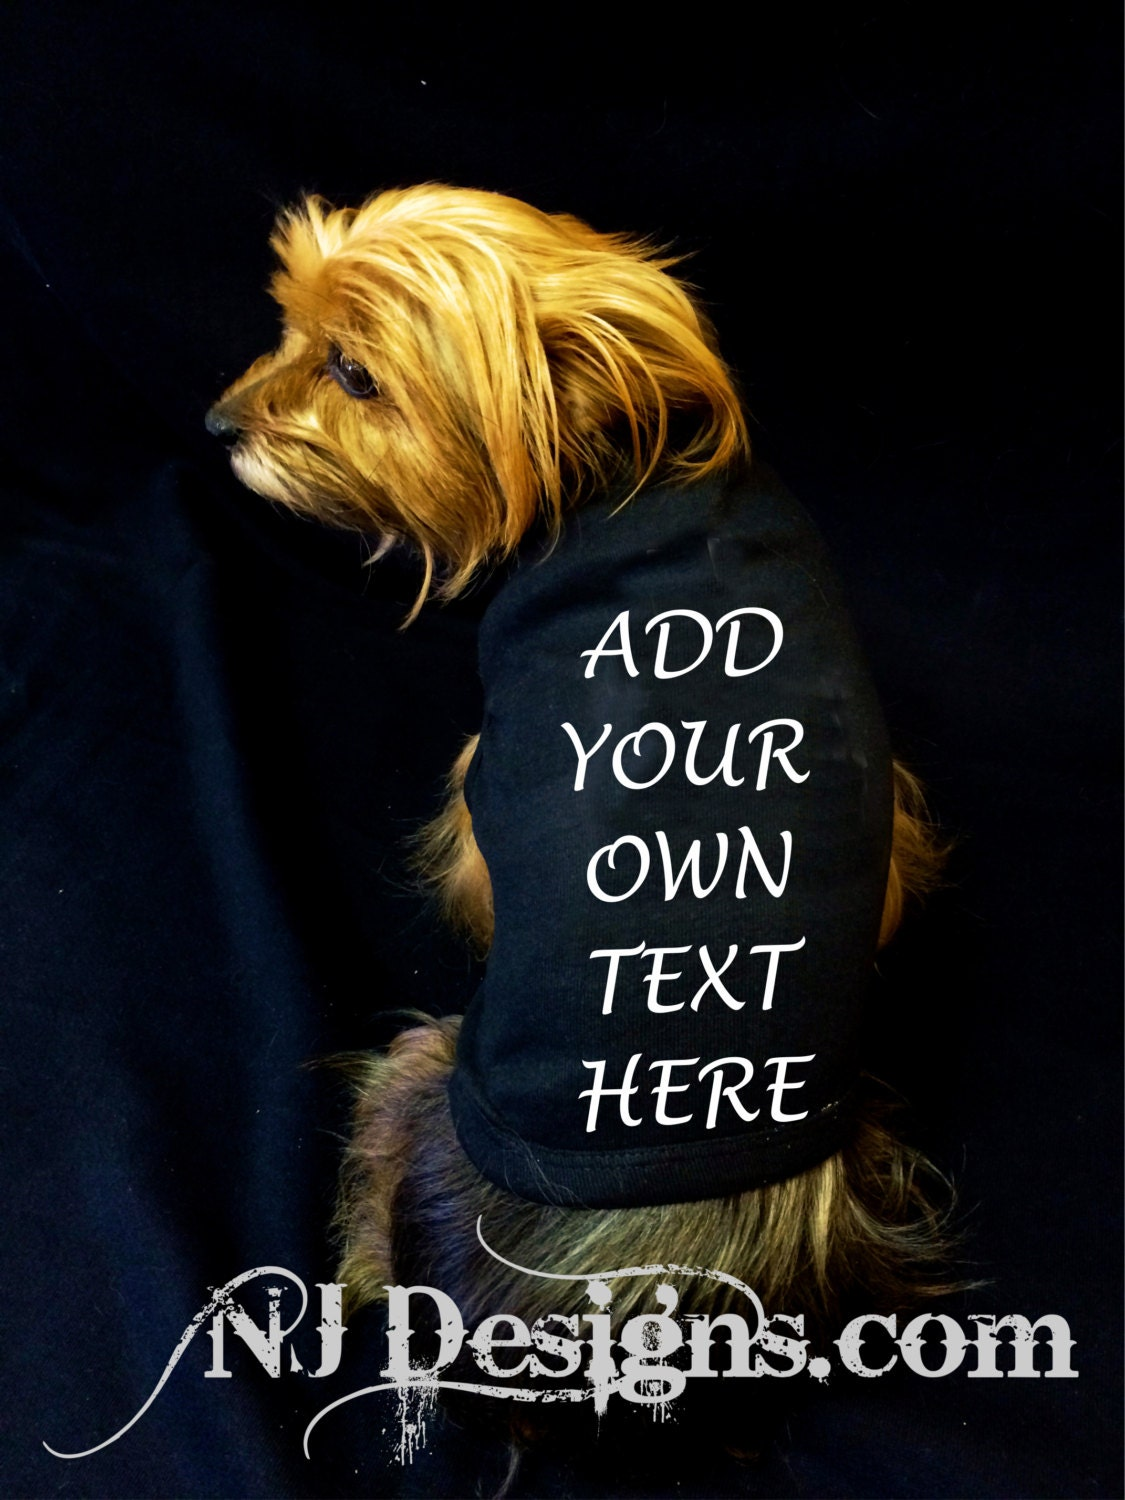 create your own custom dog shirt add your own text puppy